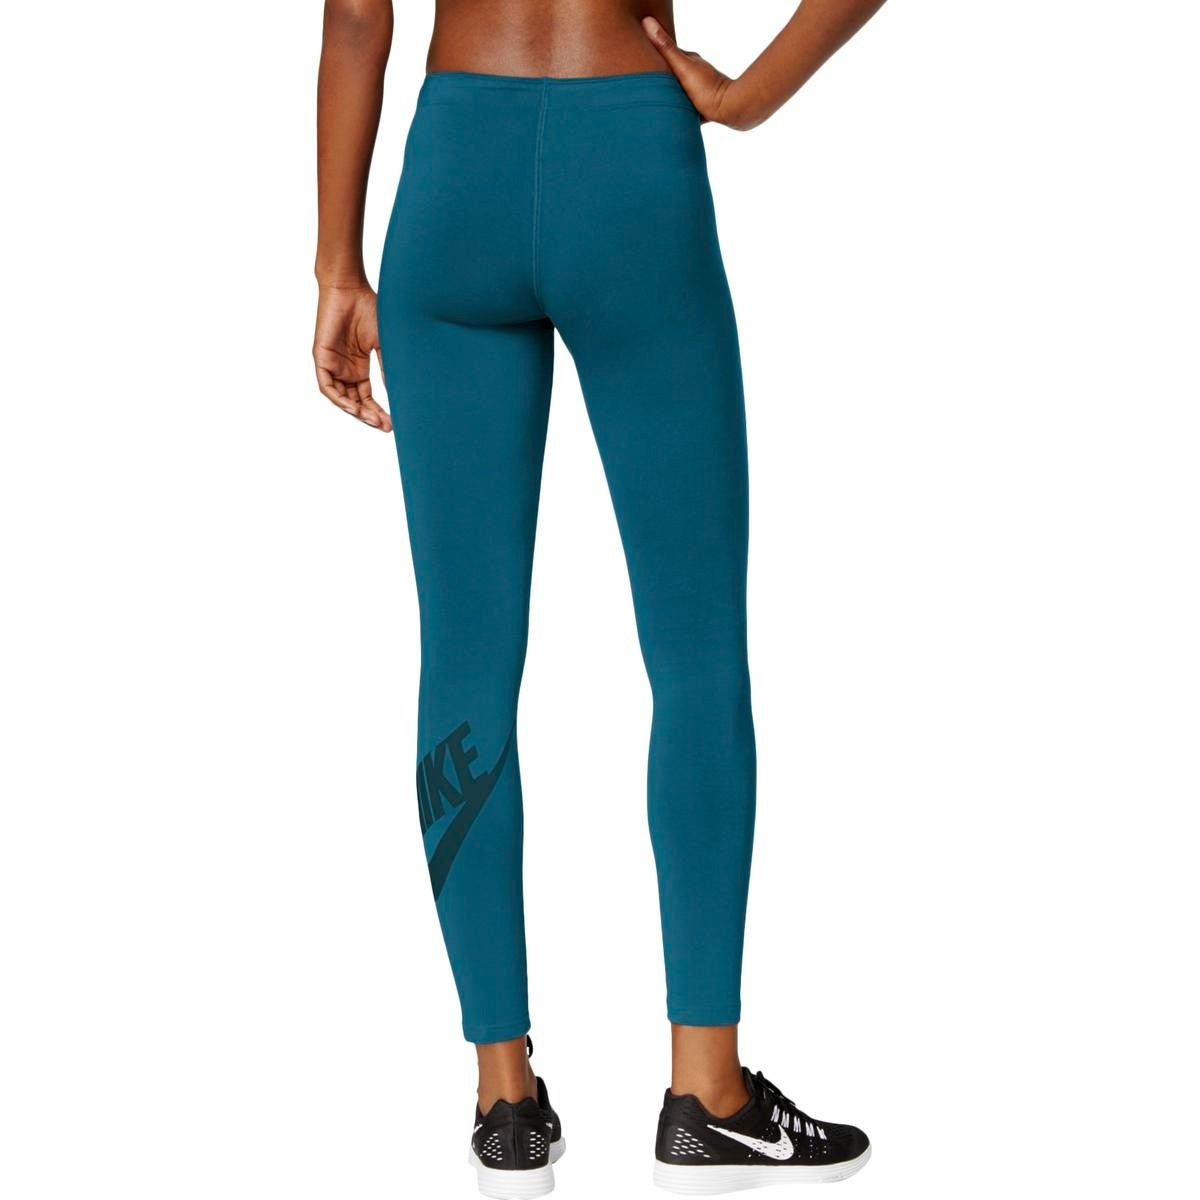 4a5da49108526 Shop Nike Womens Athletic Leggings Running Yoga - Free Shipping On Orders  Over $45 - Overstock - 20467582